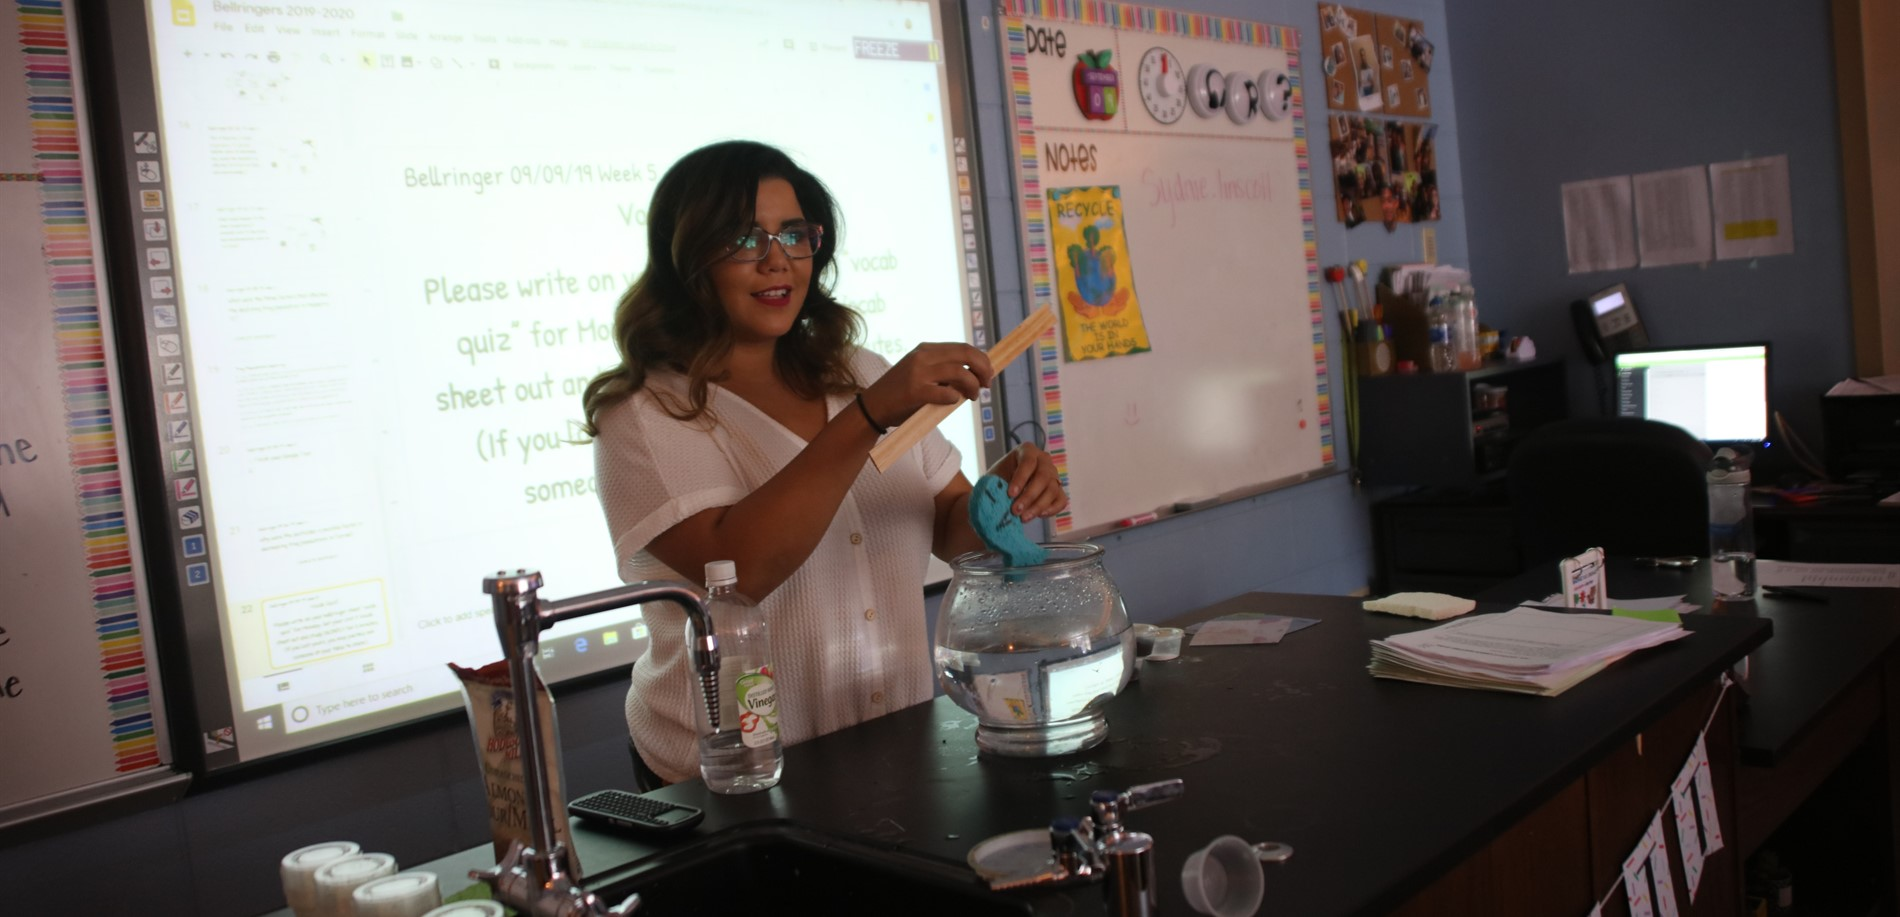 Mrs. Linscott introducing Freddie the Fish  (Class pet who will test water pollution)